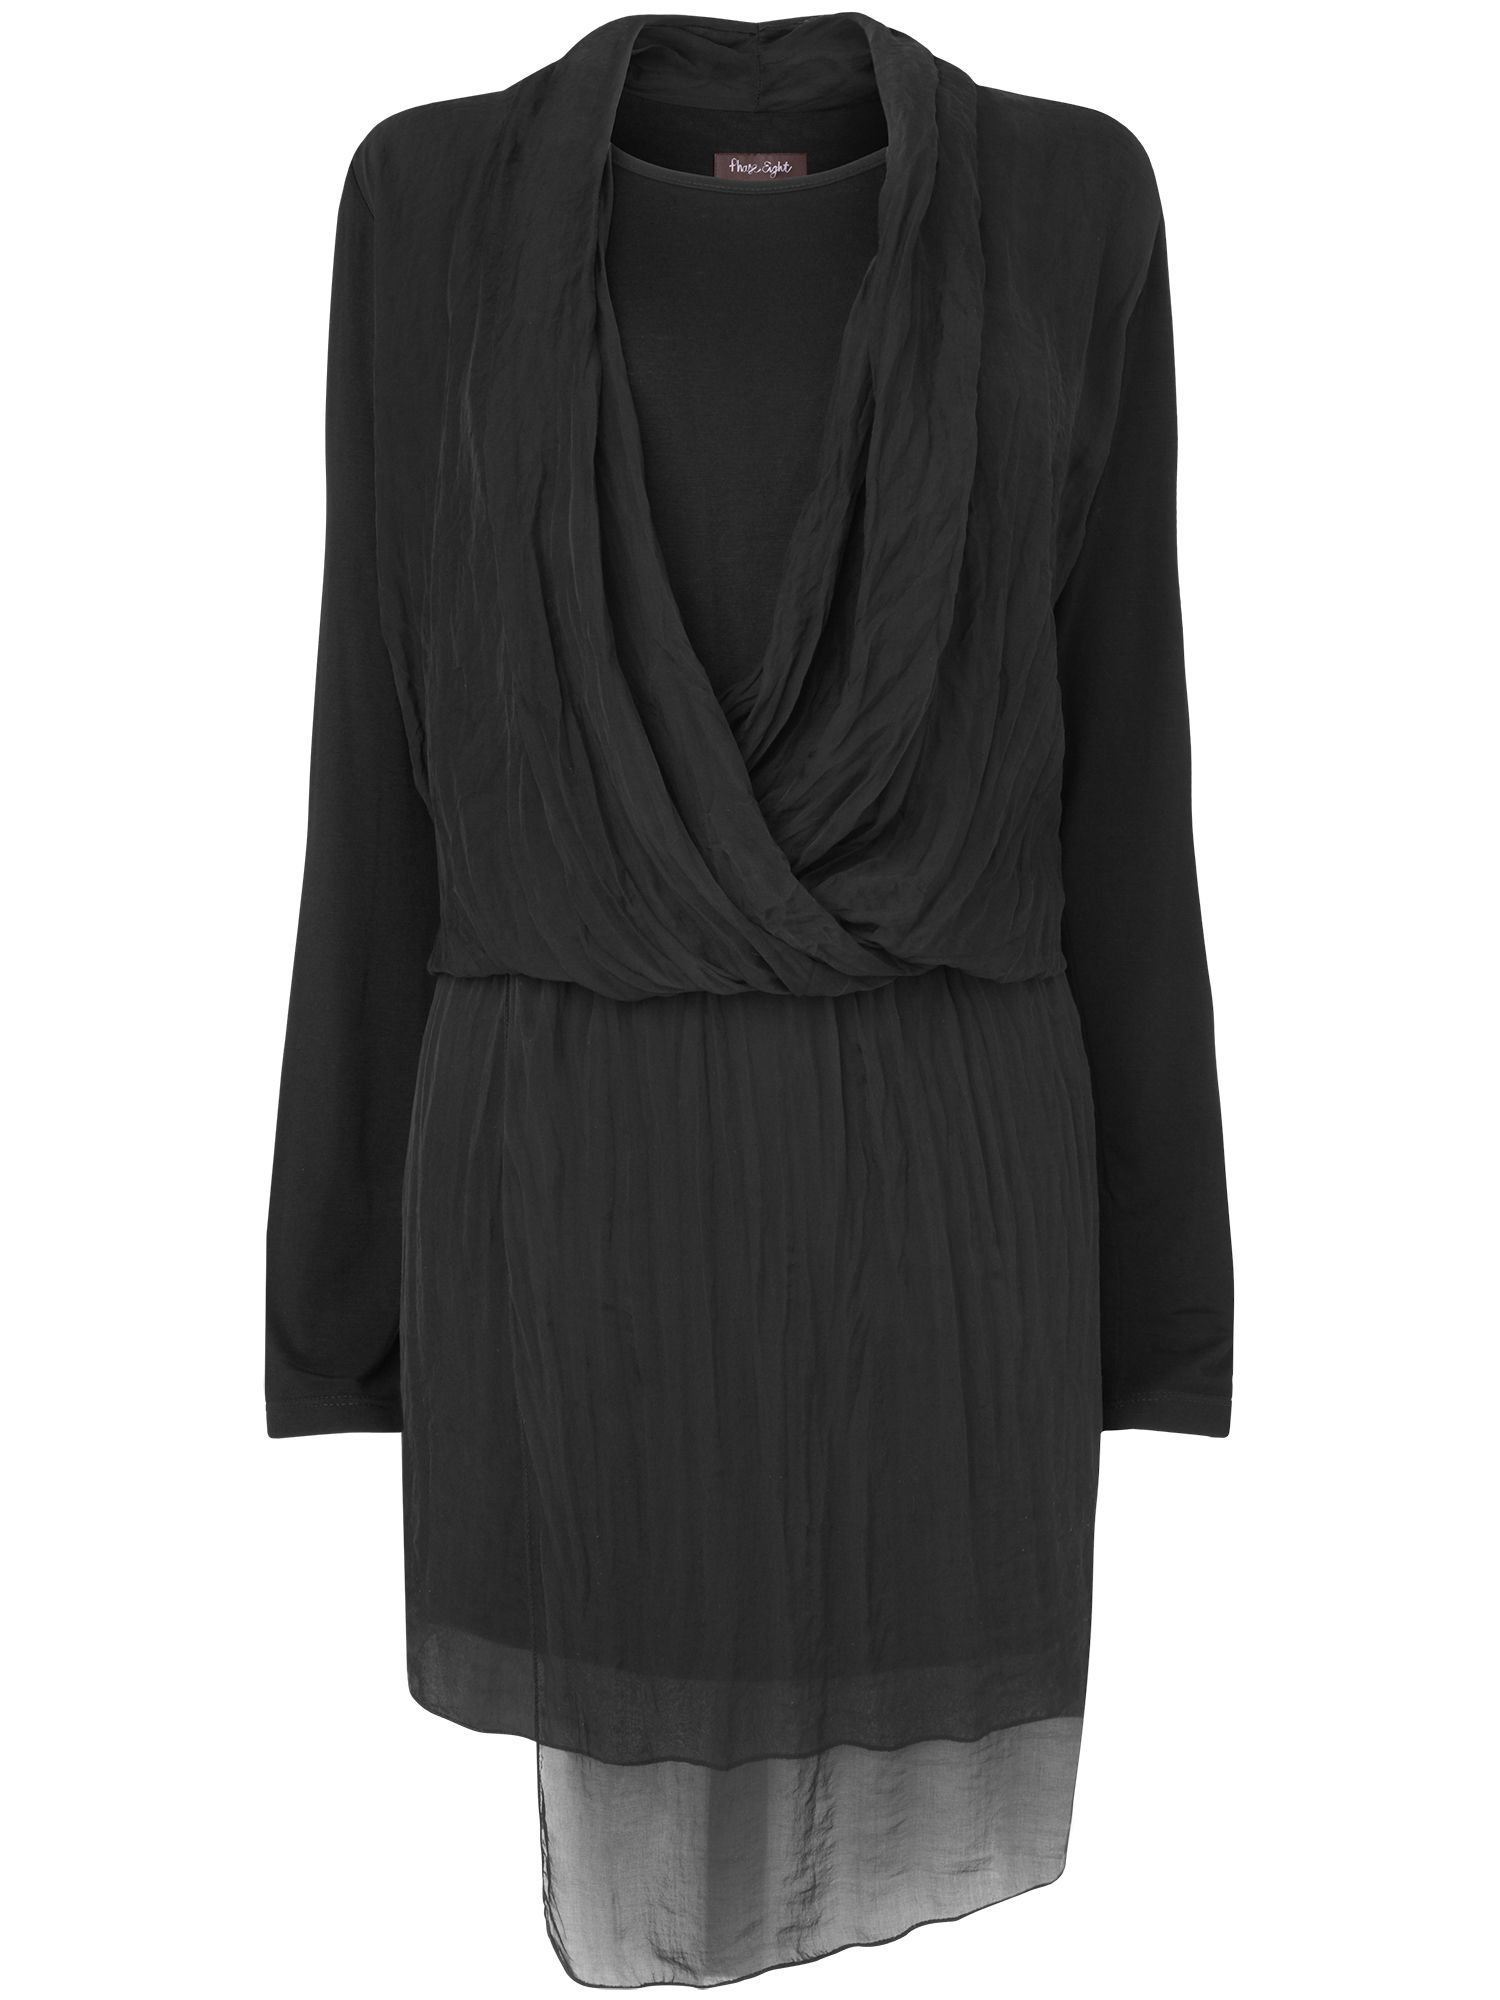 Eleanora silk jersey dress